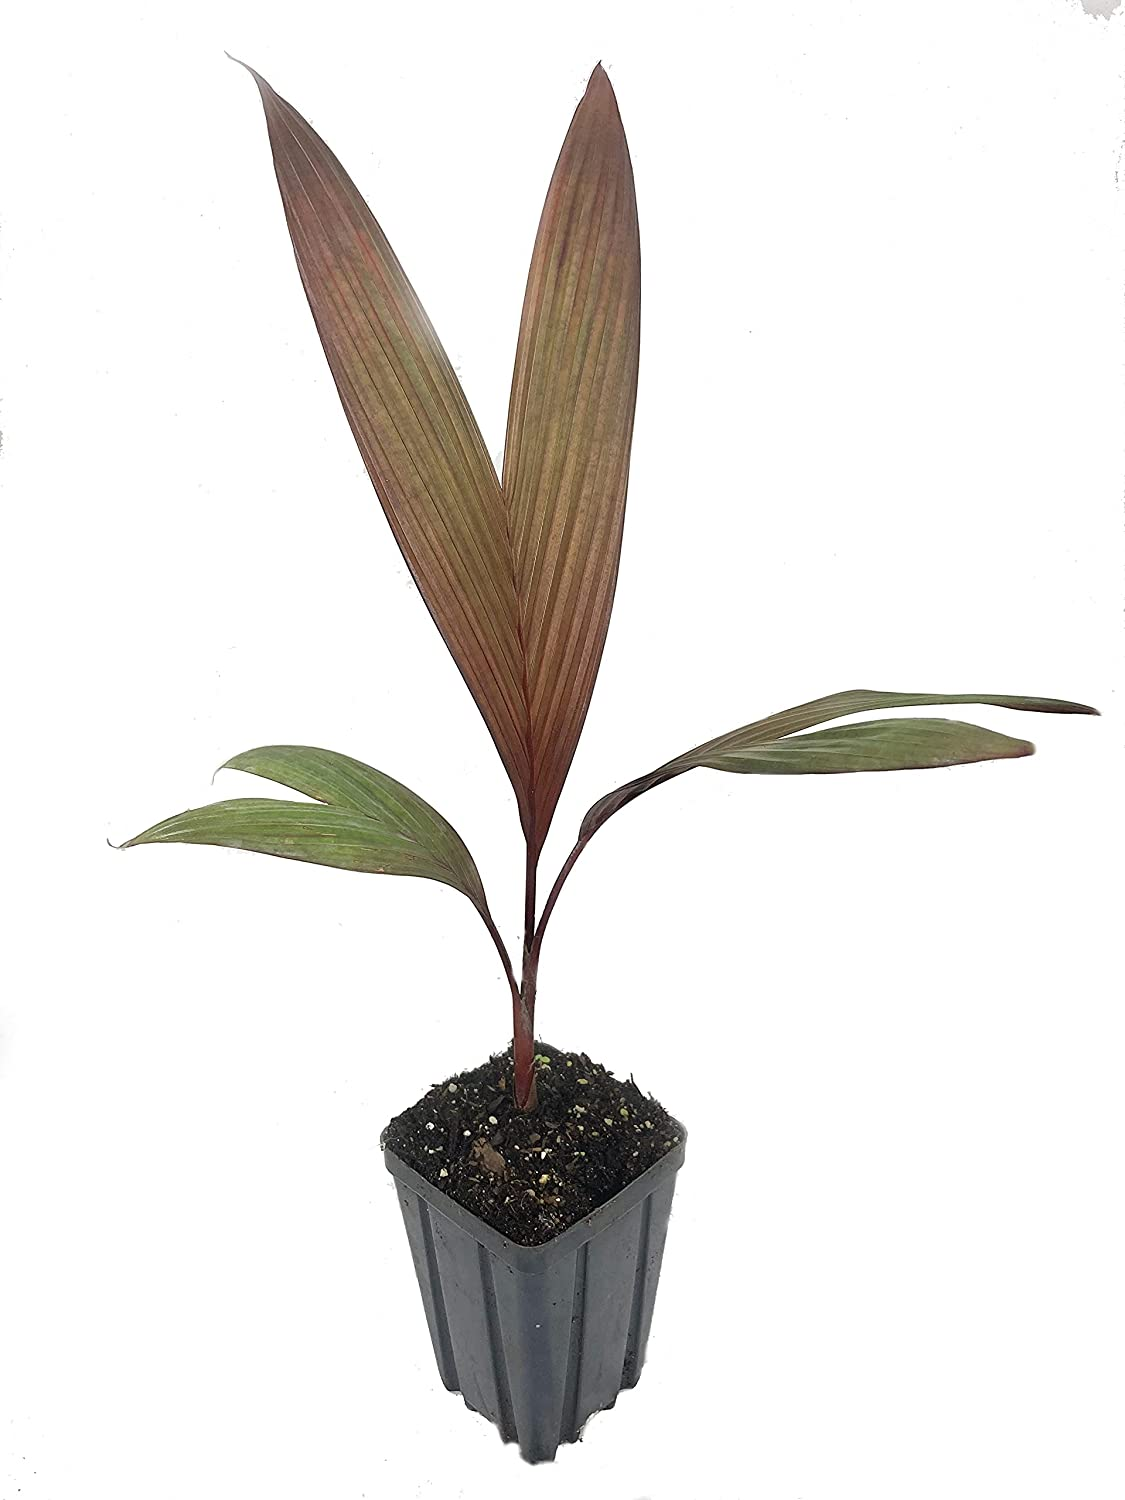 Maroon Crownshaft Palm Tree - Ranking TOP18 3 Live Pots Plants 4 Are in Inch Sales for sale